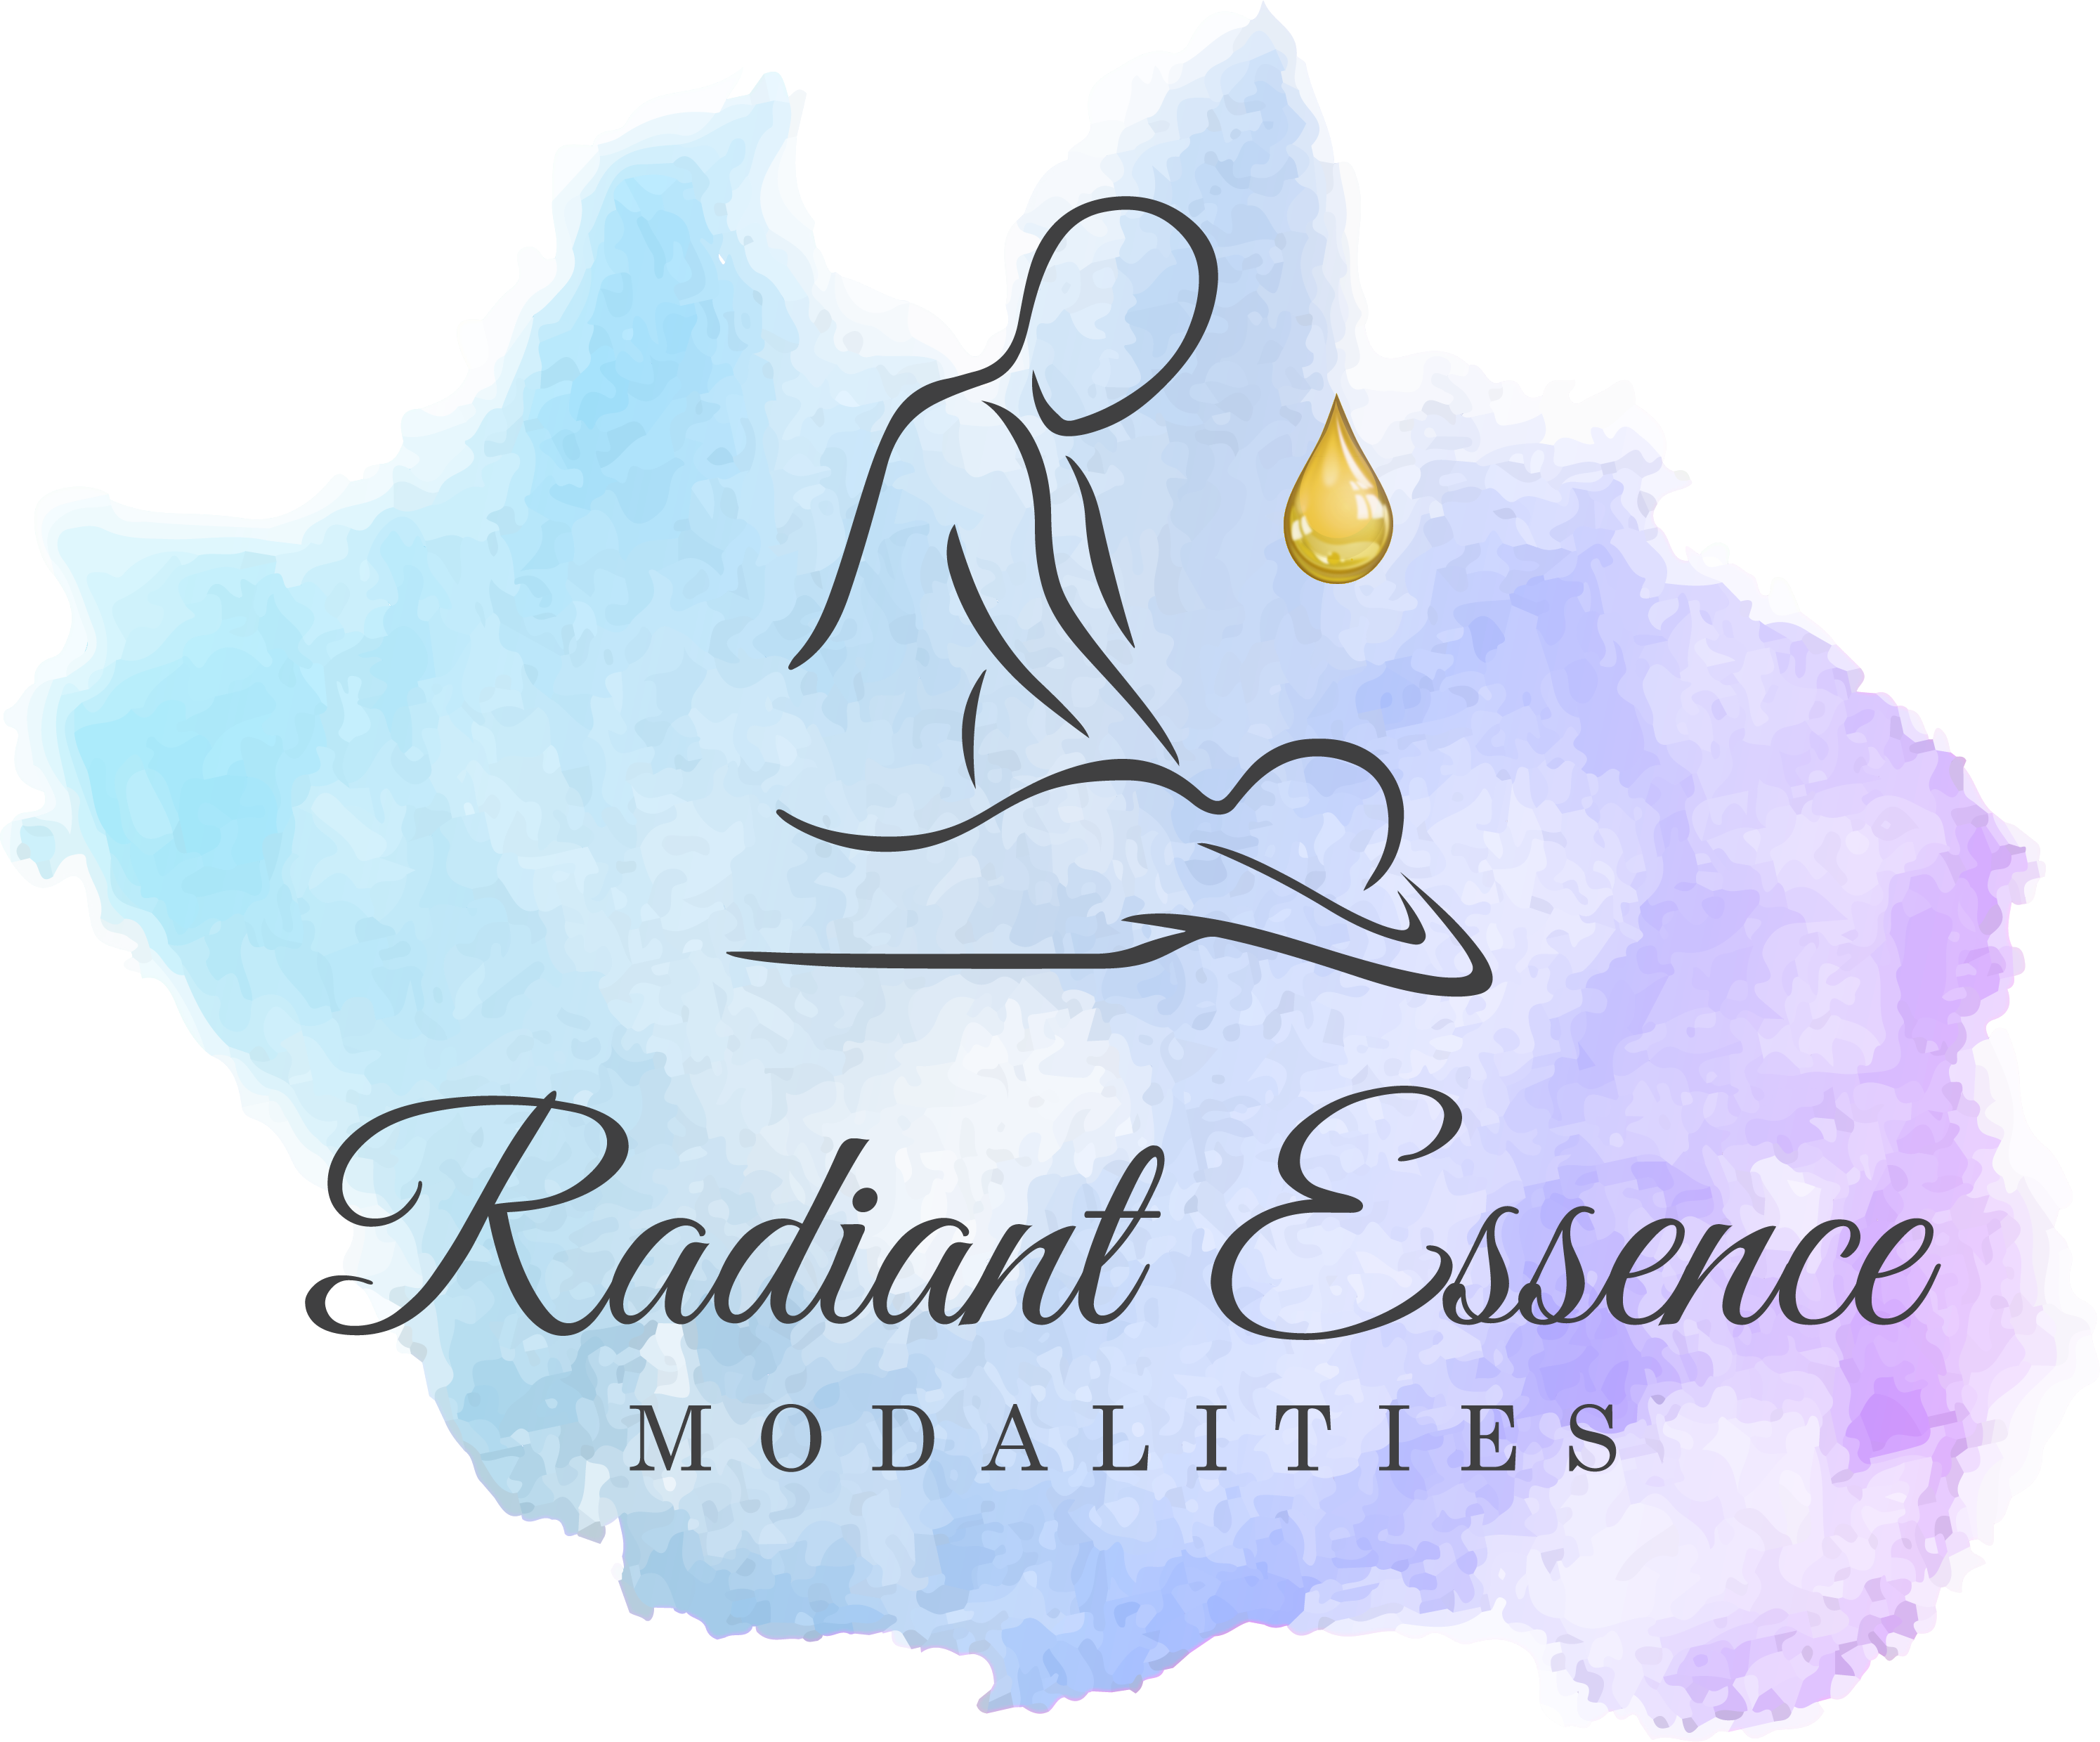 Radiant Essence Modalities